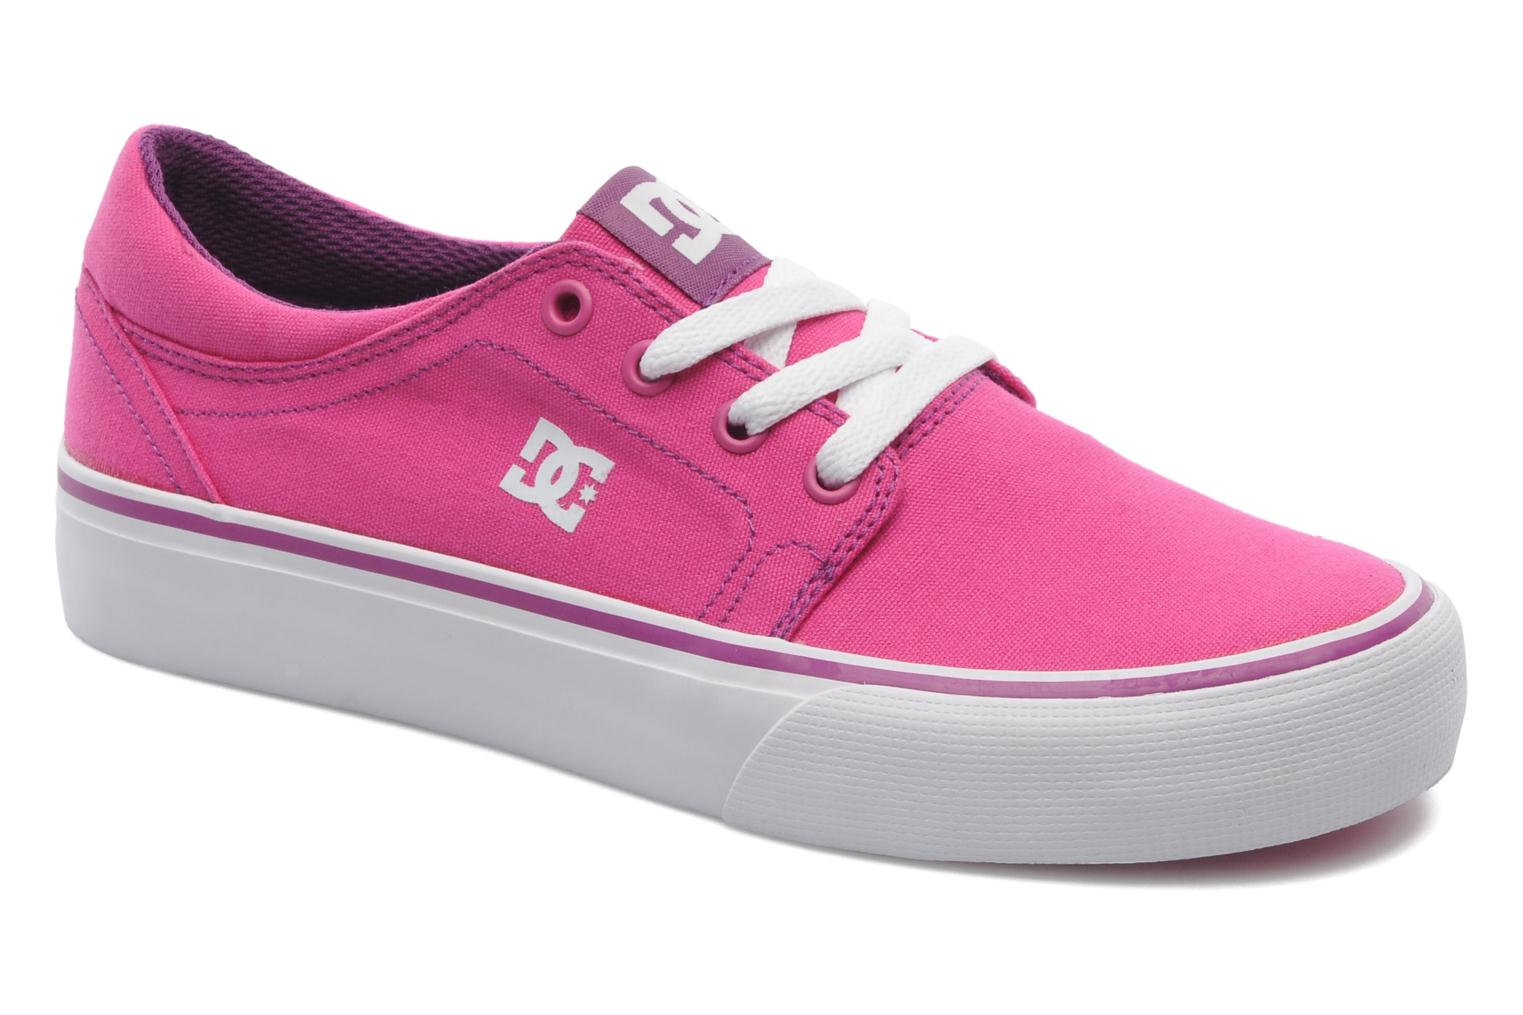 TRASE TX Kids by DC Shoes